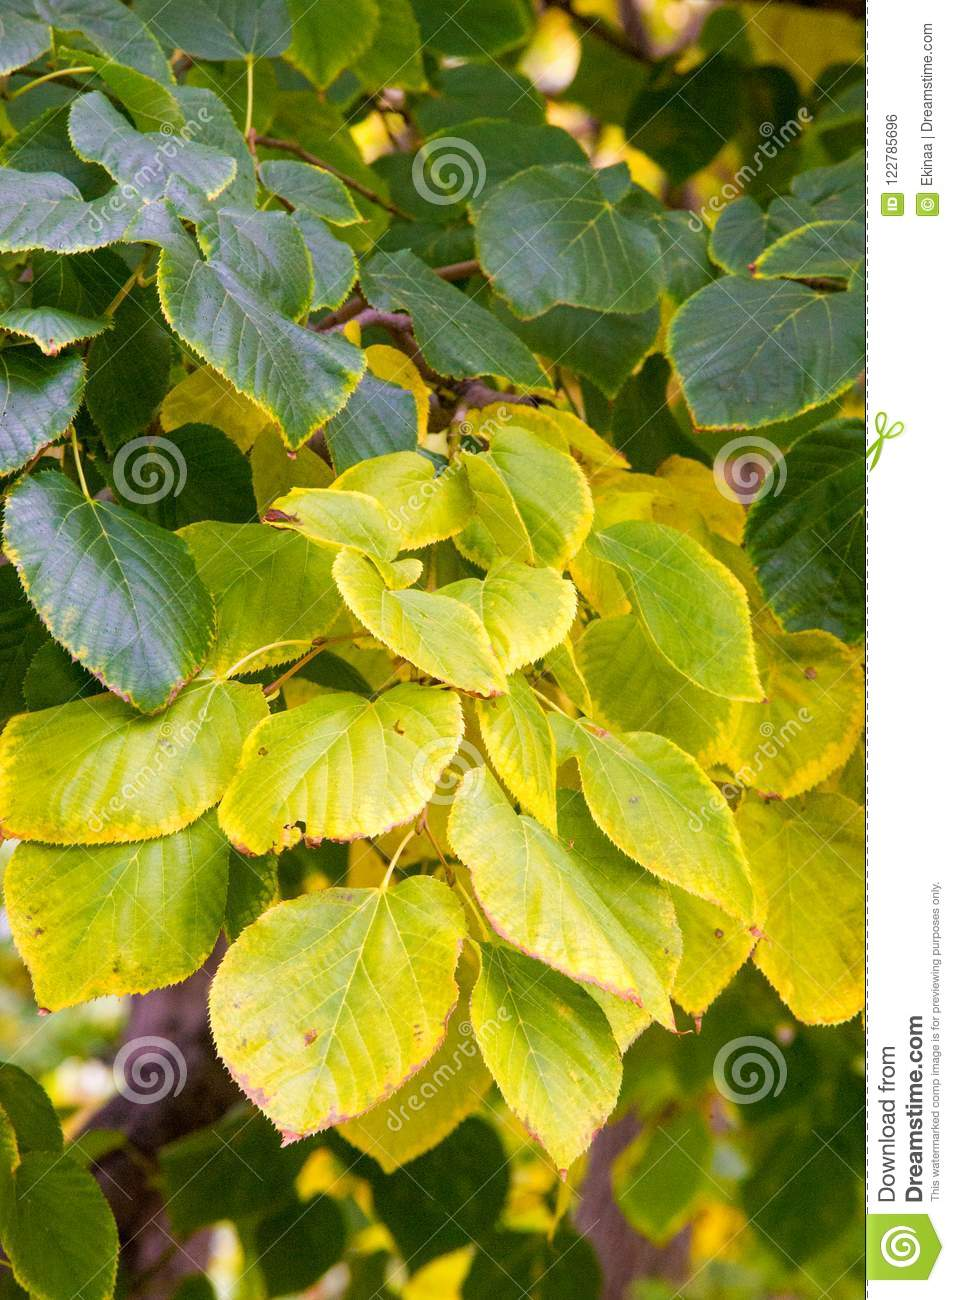 Texture, background, pattern. Autumn leaves of lindens are yellow on a tree. Photographed in counter light. linden, lime, fake, c